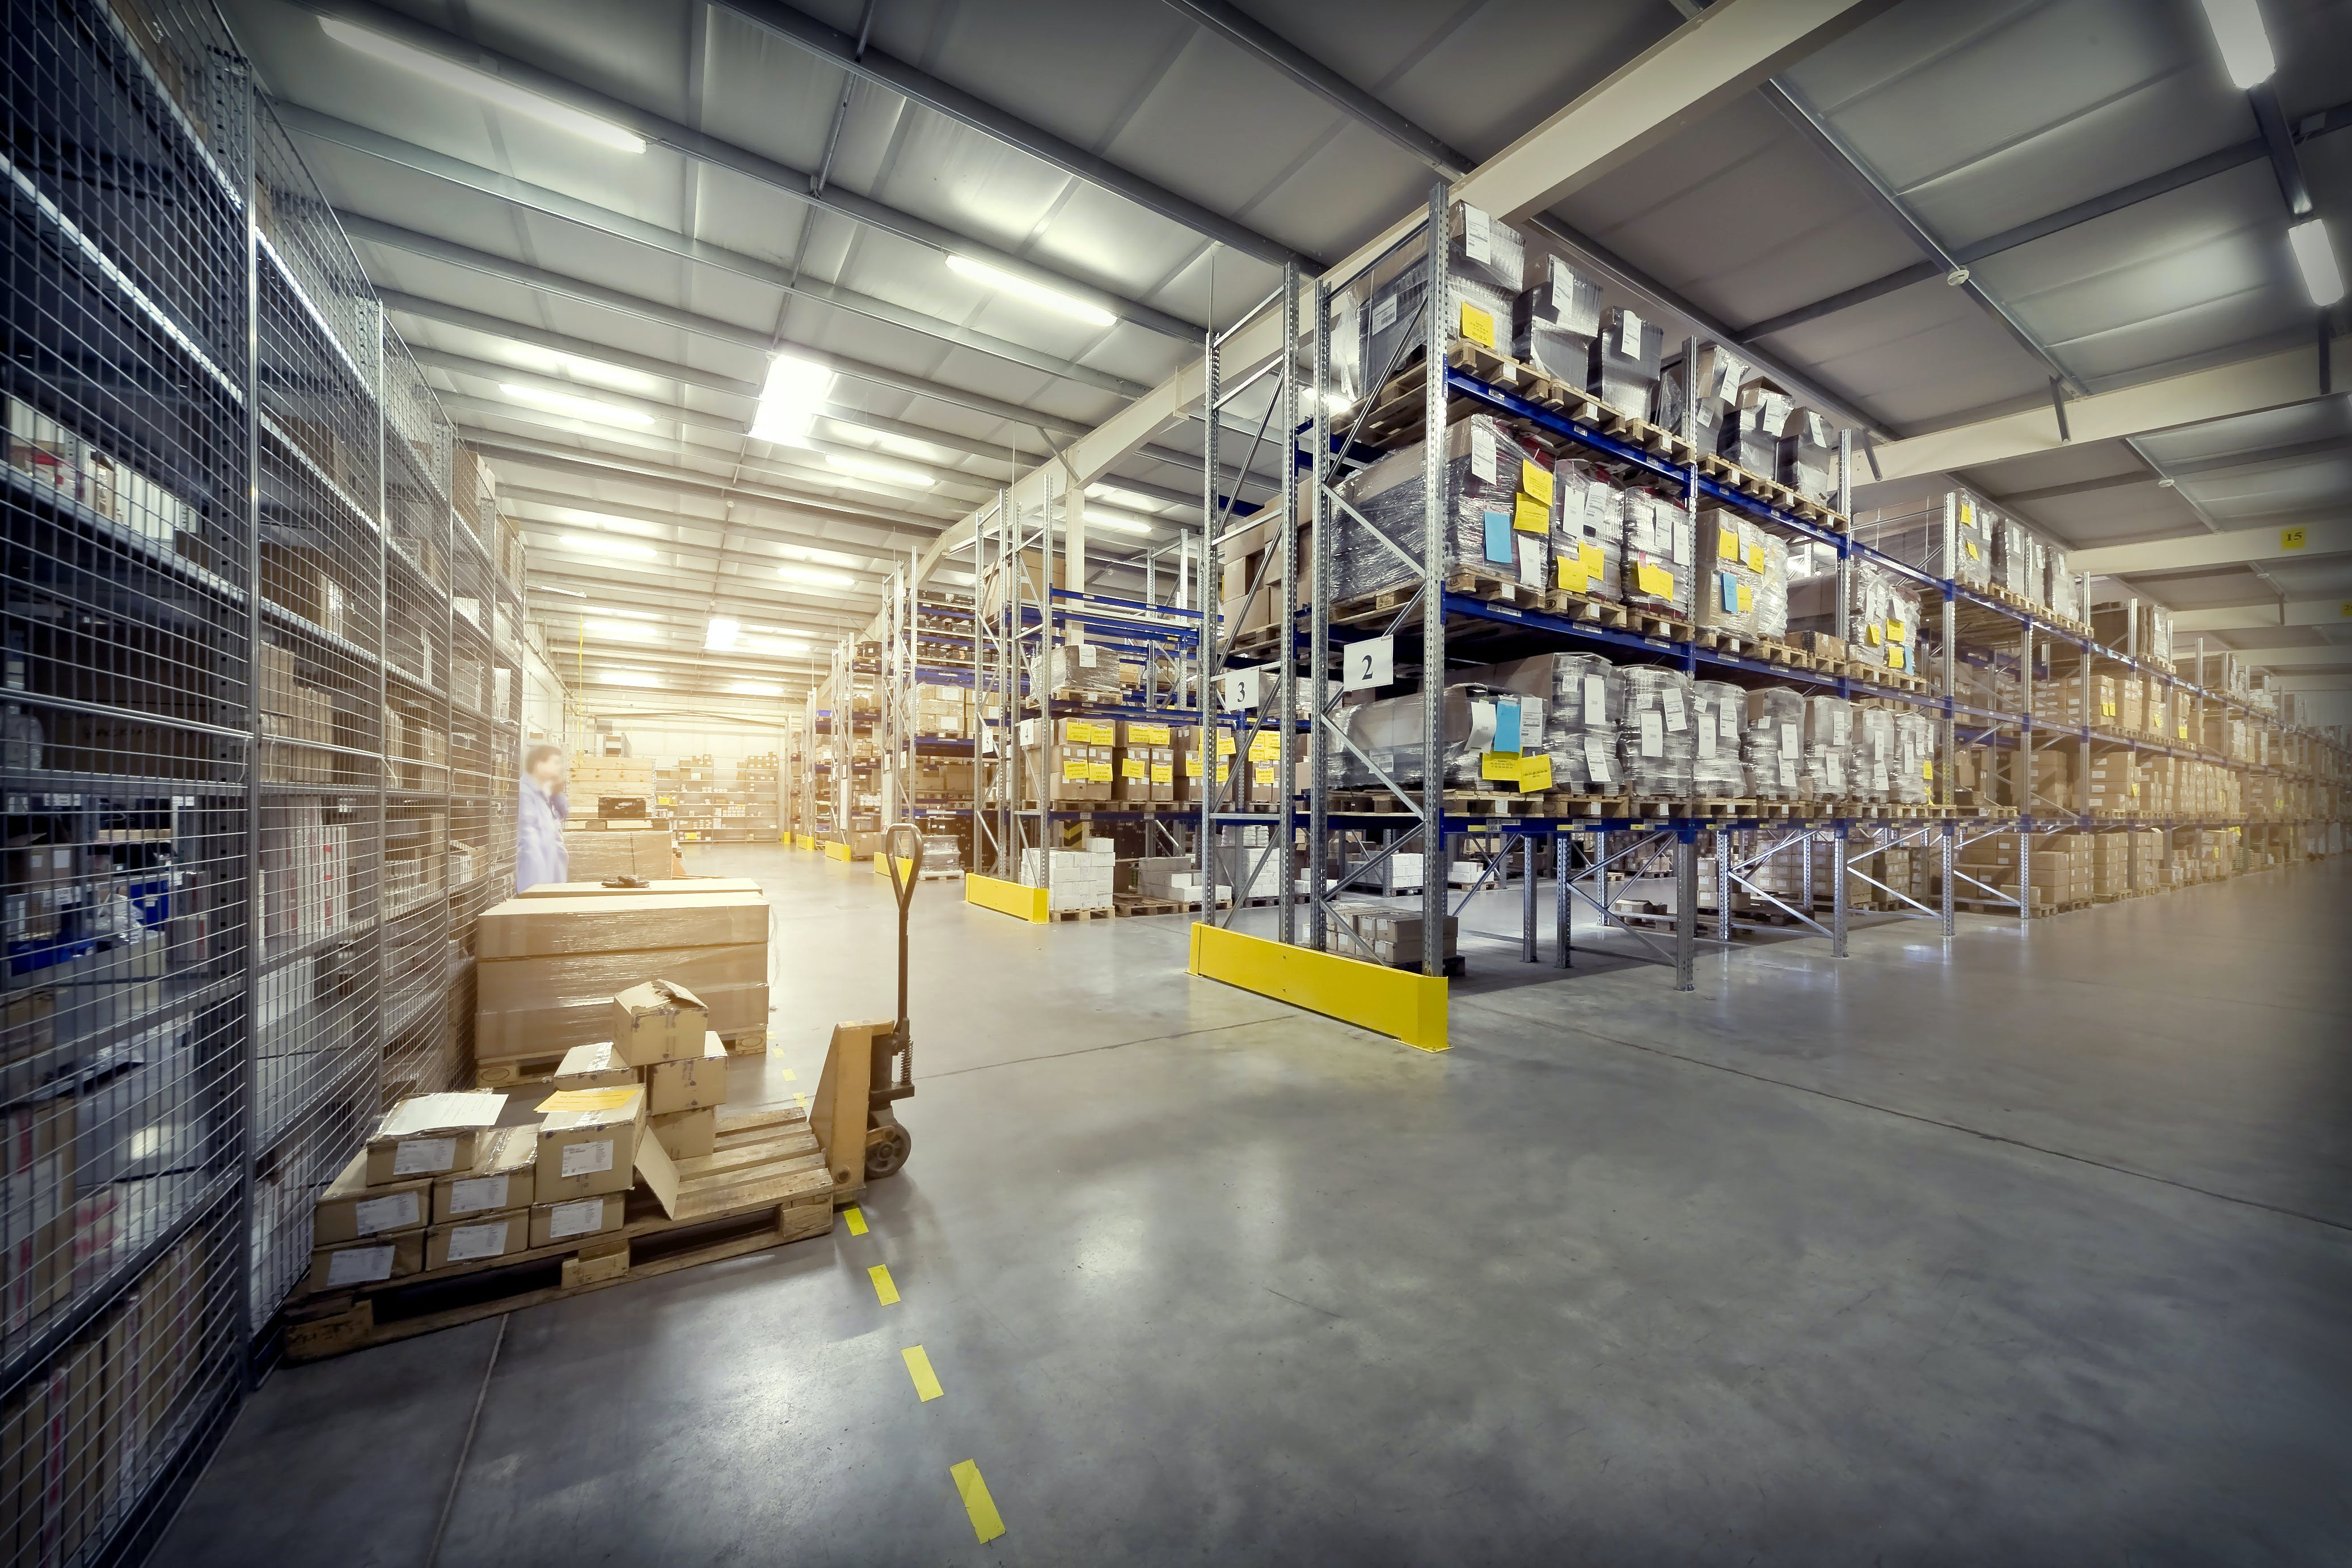 An image of a warehouse